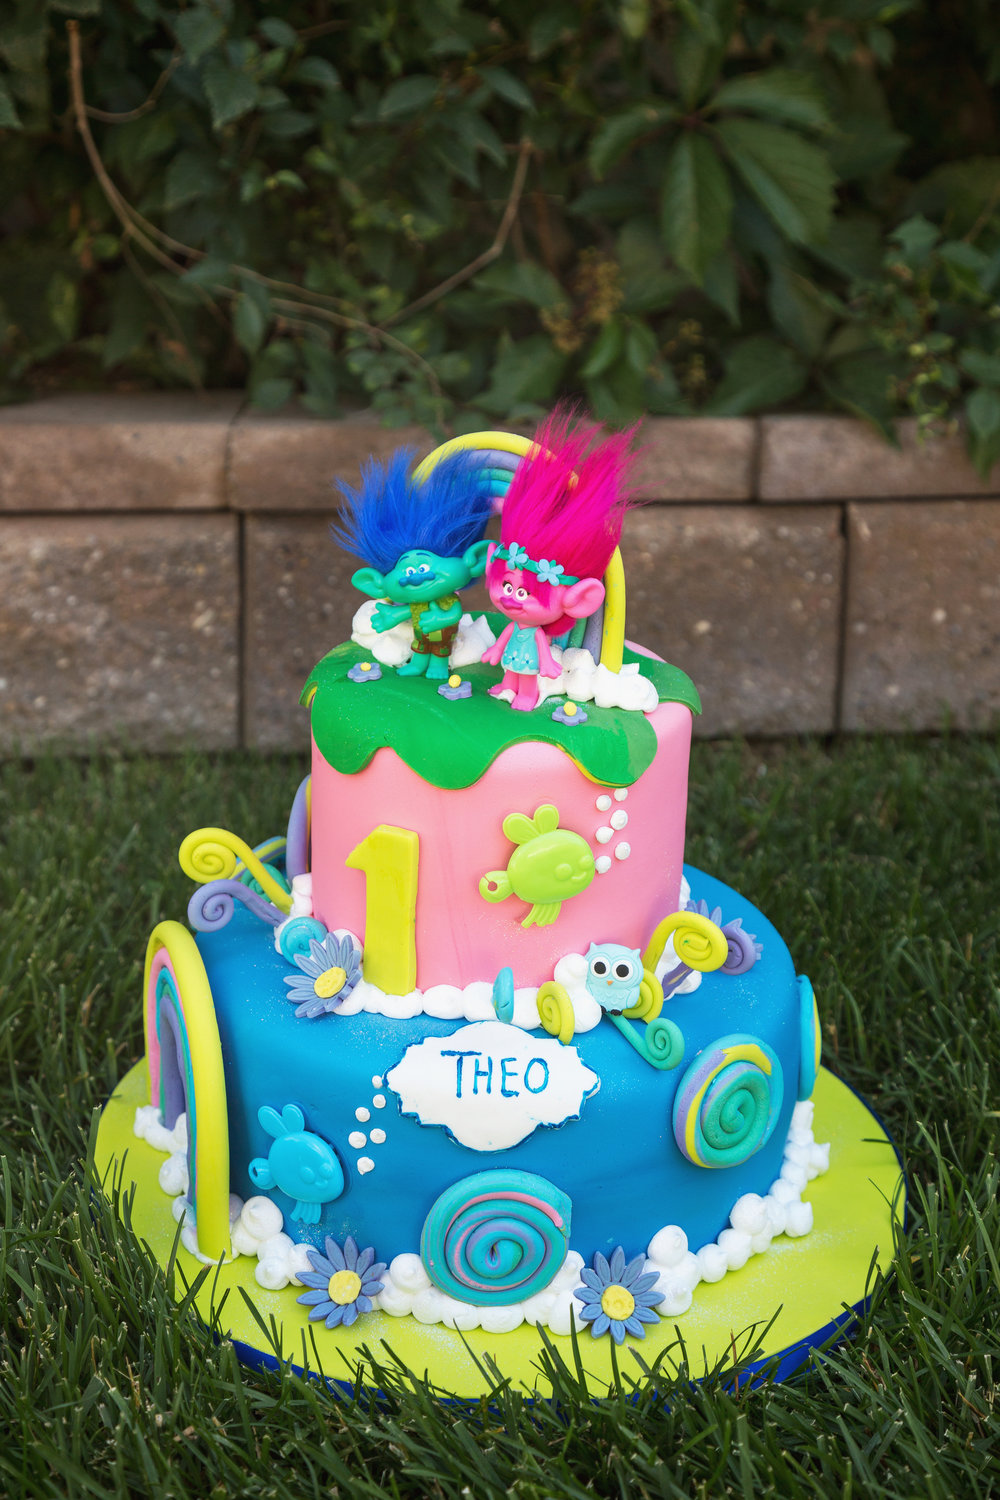 Theo_1stbday_25.jpg